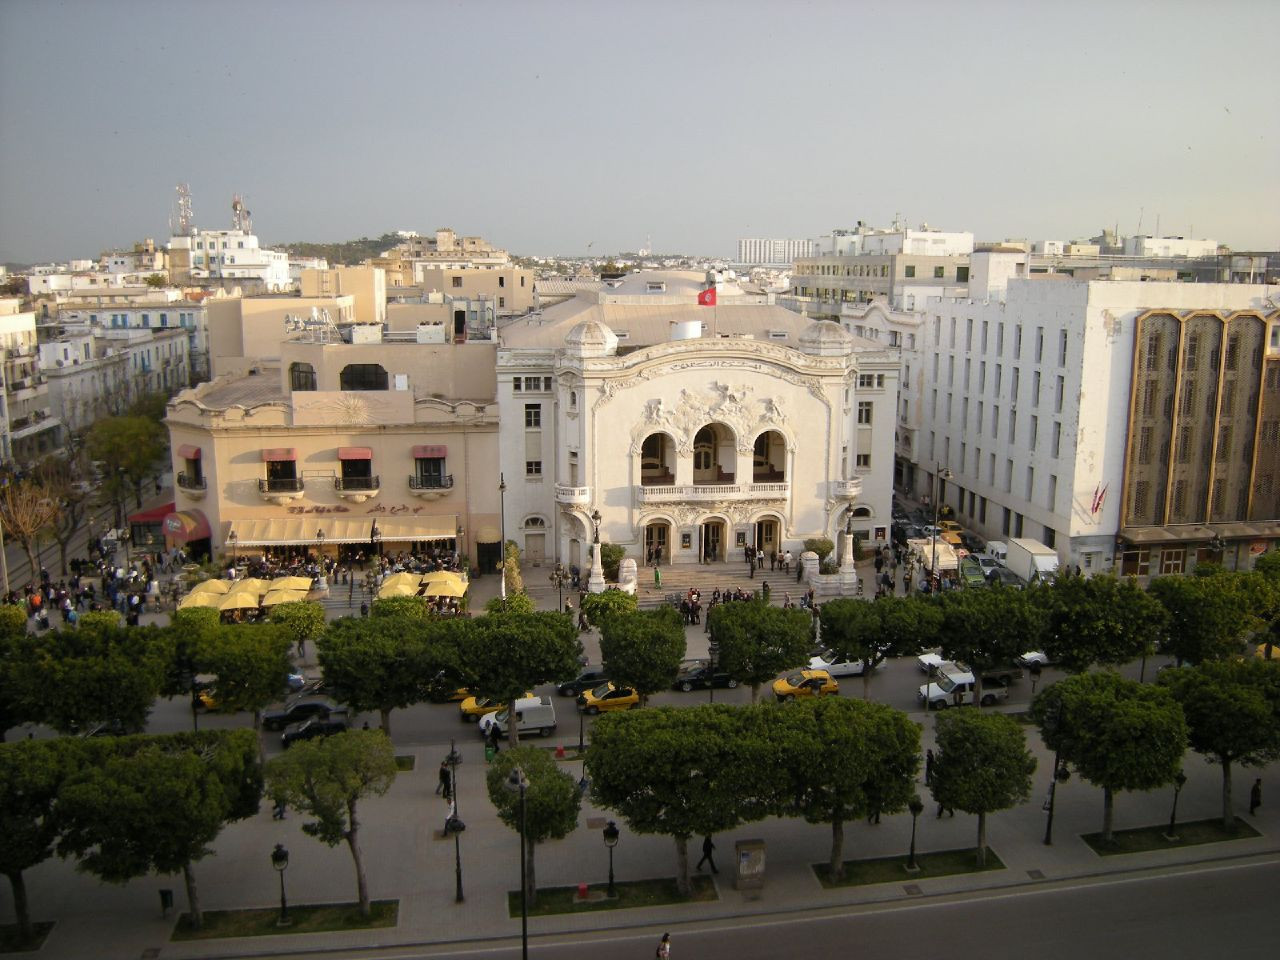 Tunisia to be barred from bidding for 2022 Youth Olympics until Israeli athletes welcome